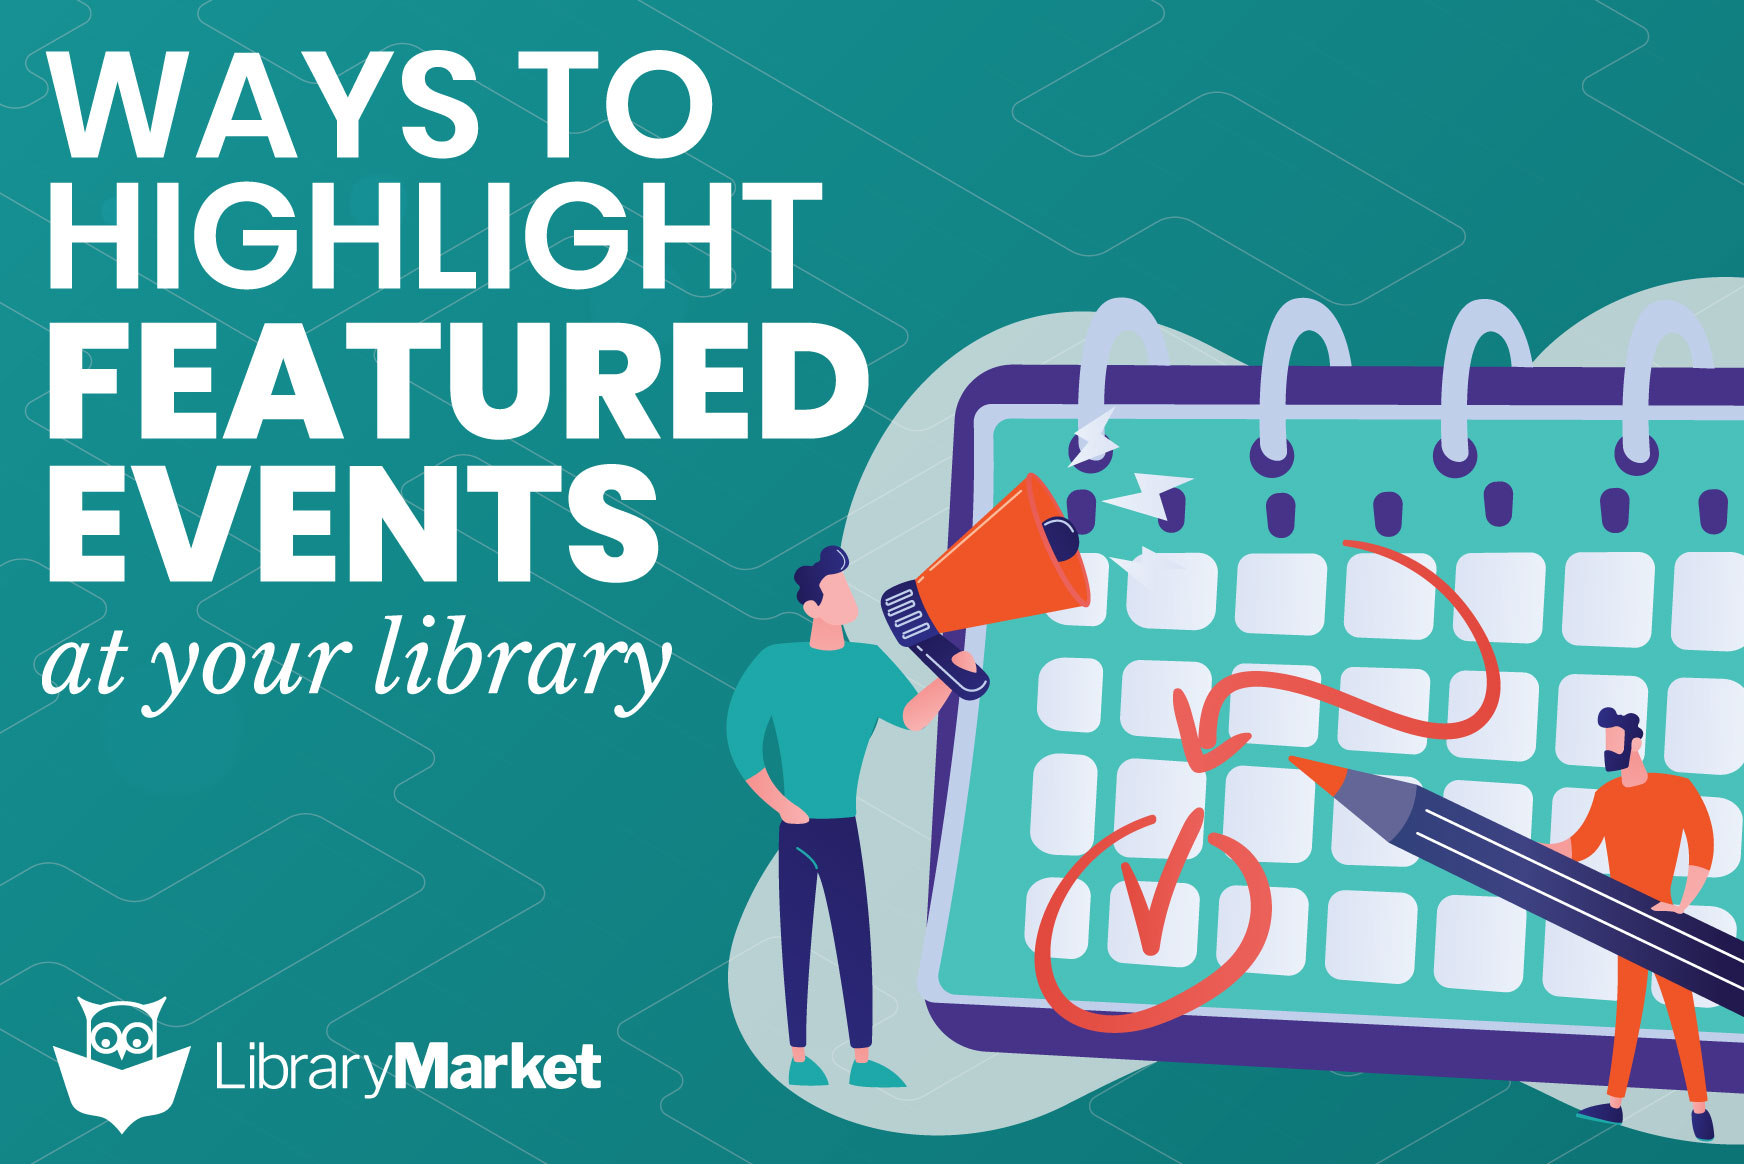 Ways to Highlight Featured Events at Your Library